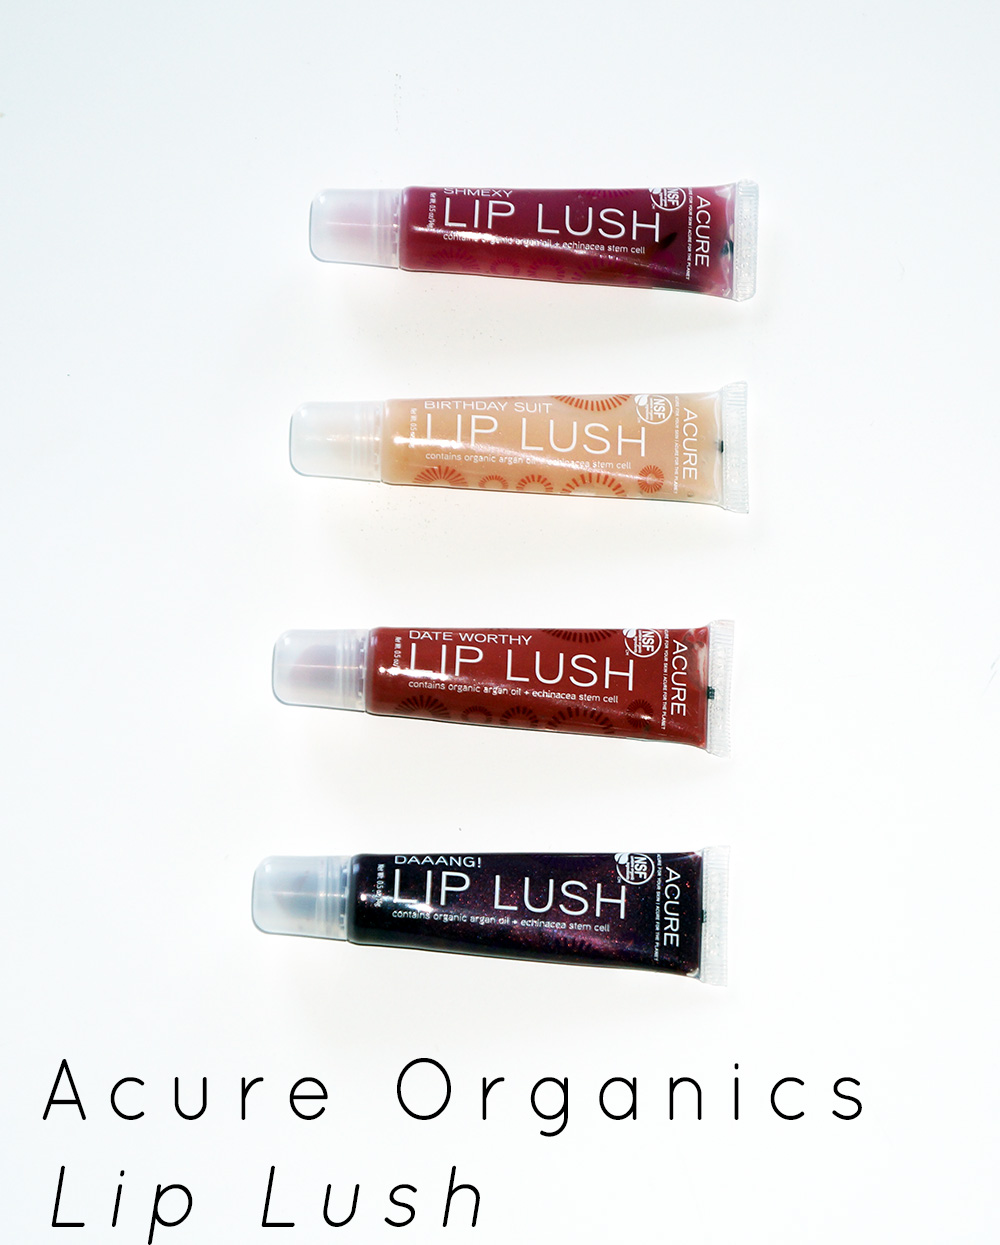 acure-organics-lip-lush-packaging